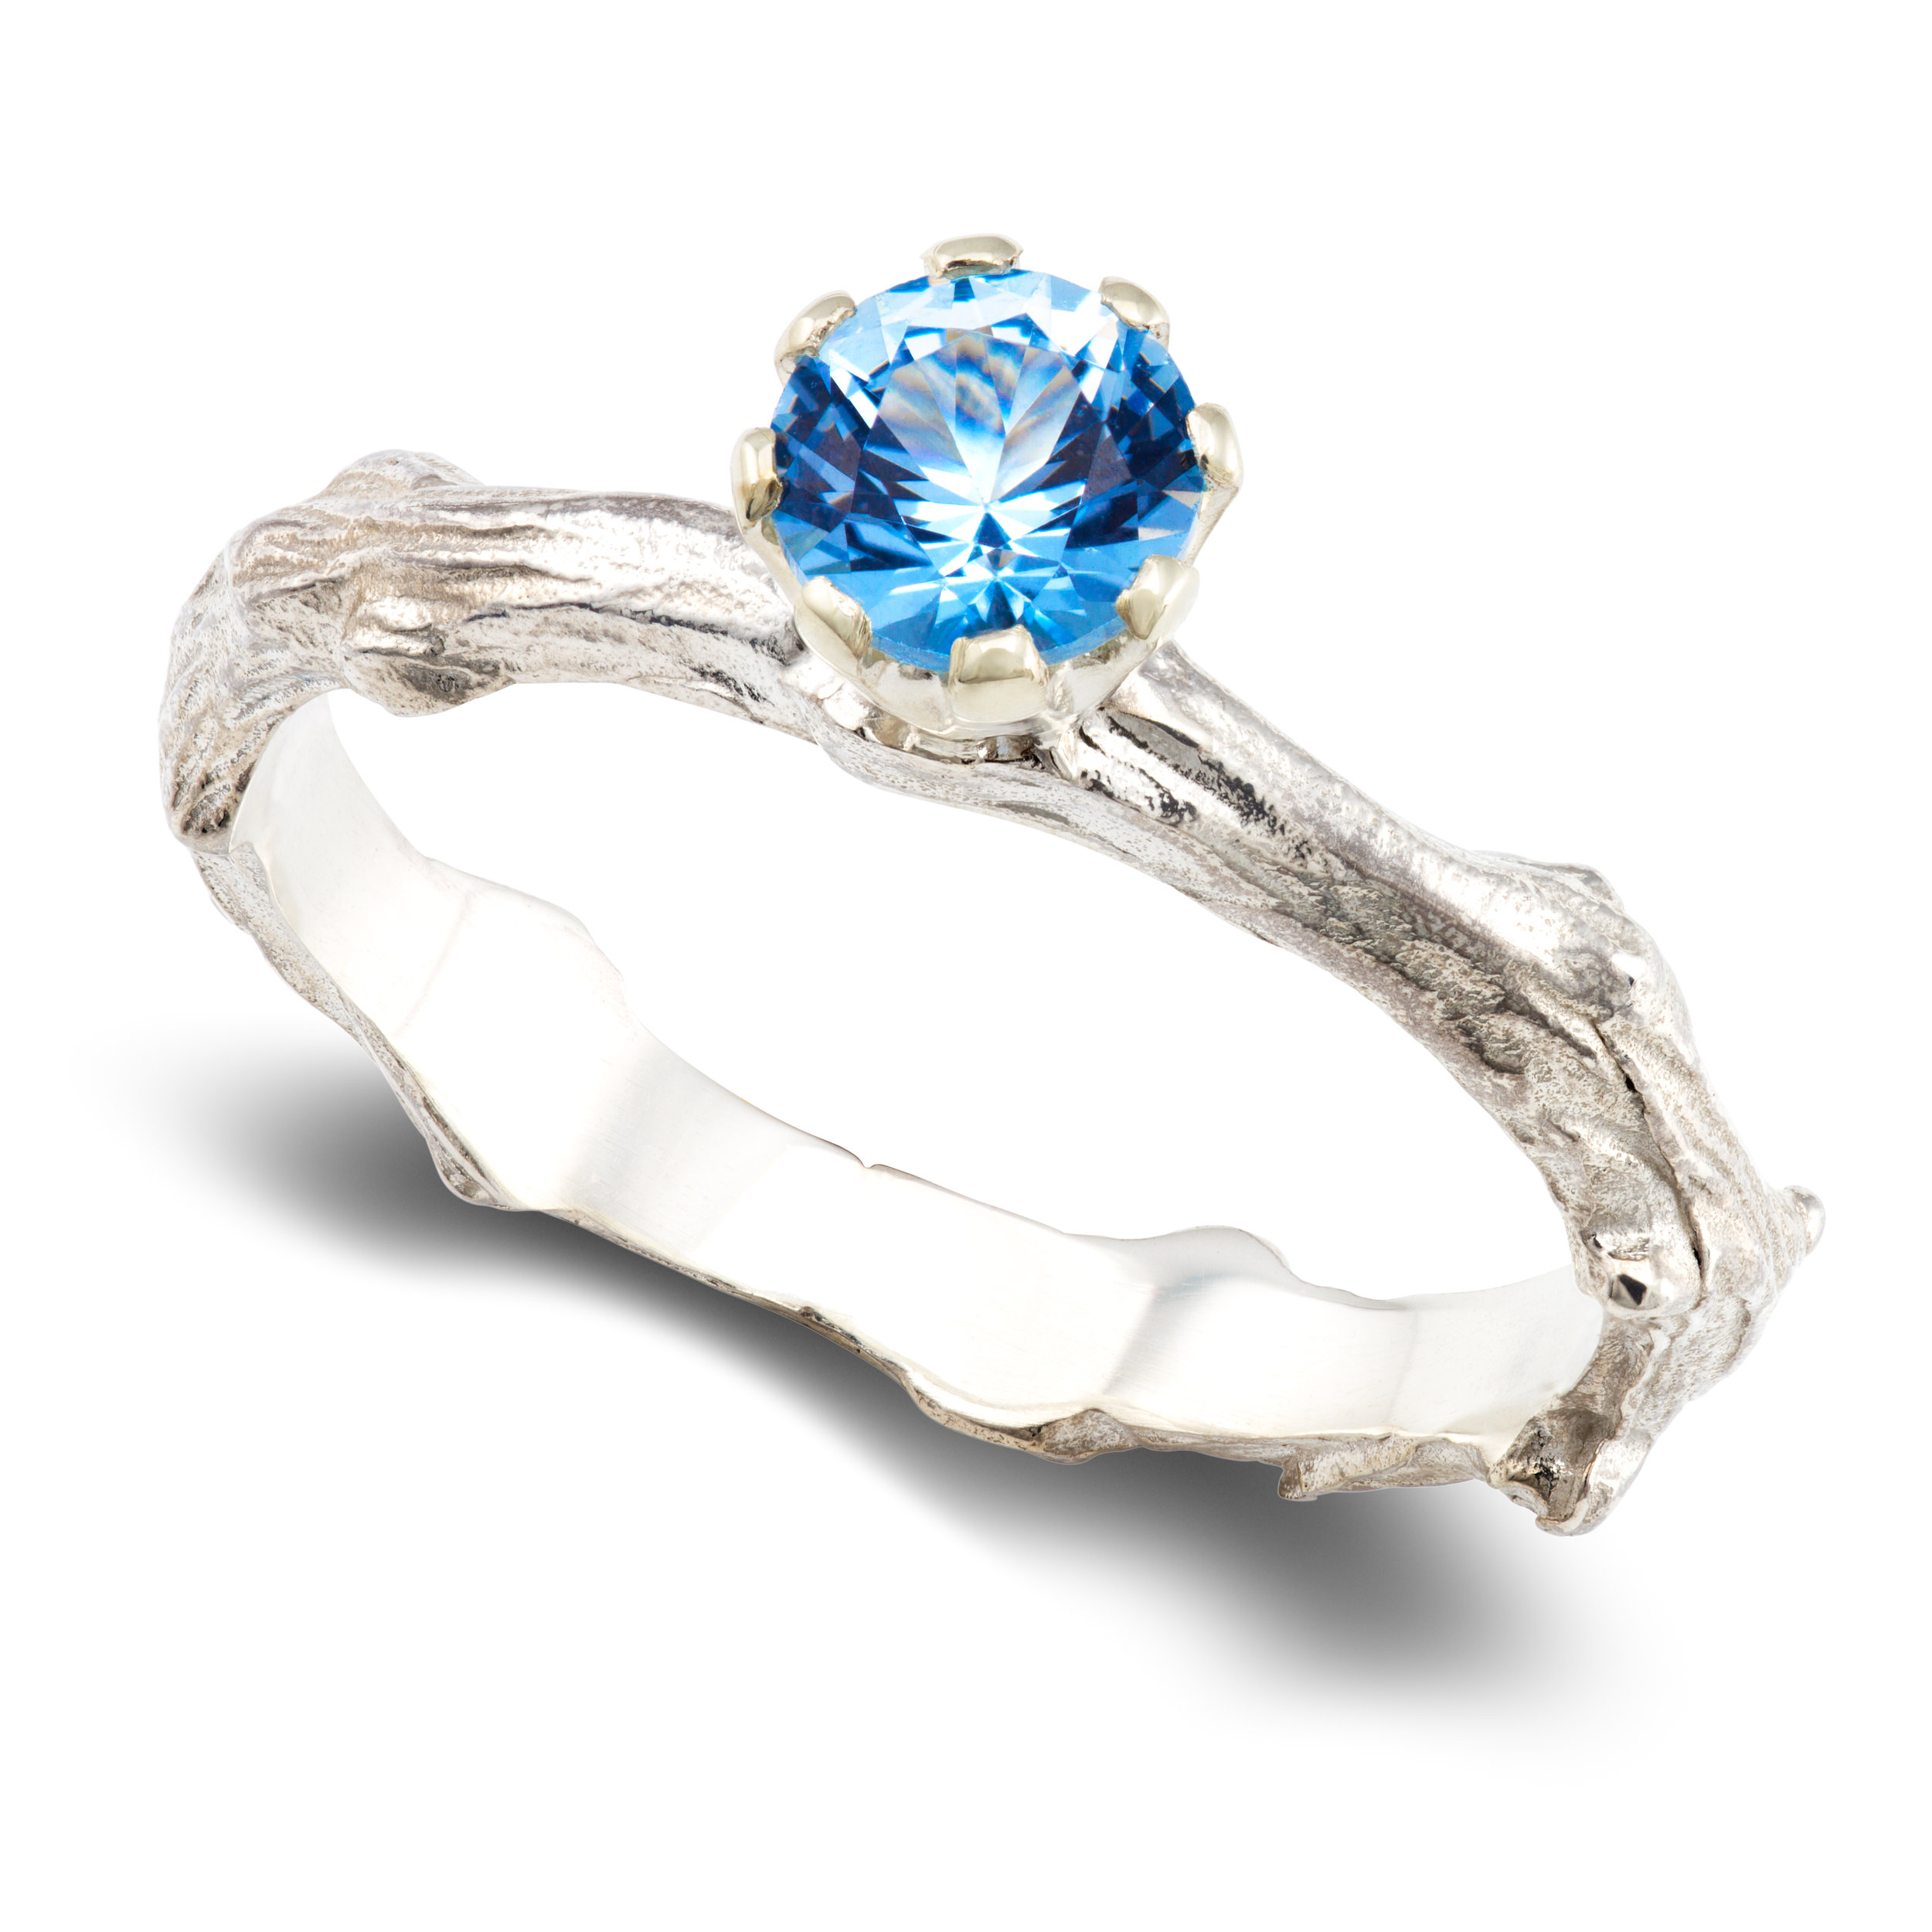 Silver & lab-created blue spinel ring - £270